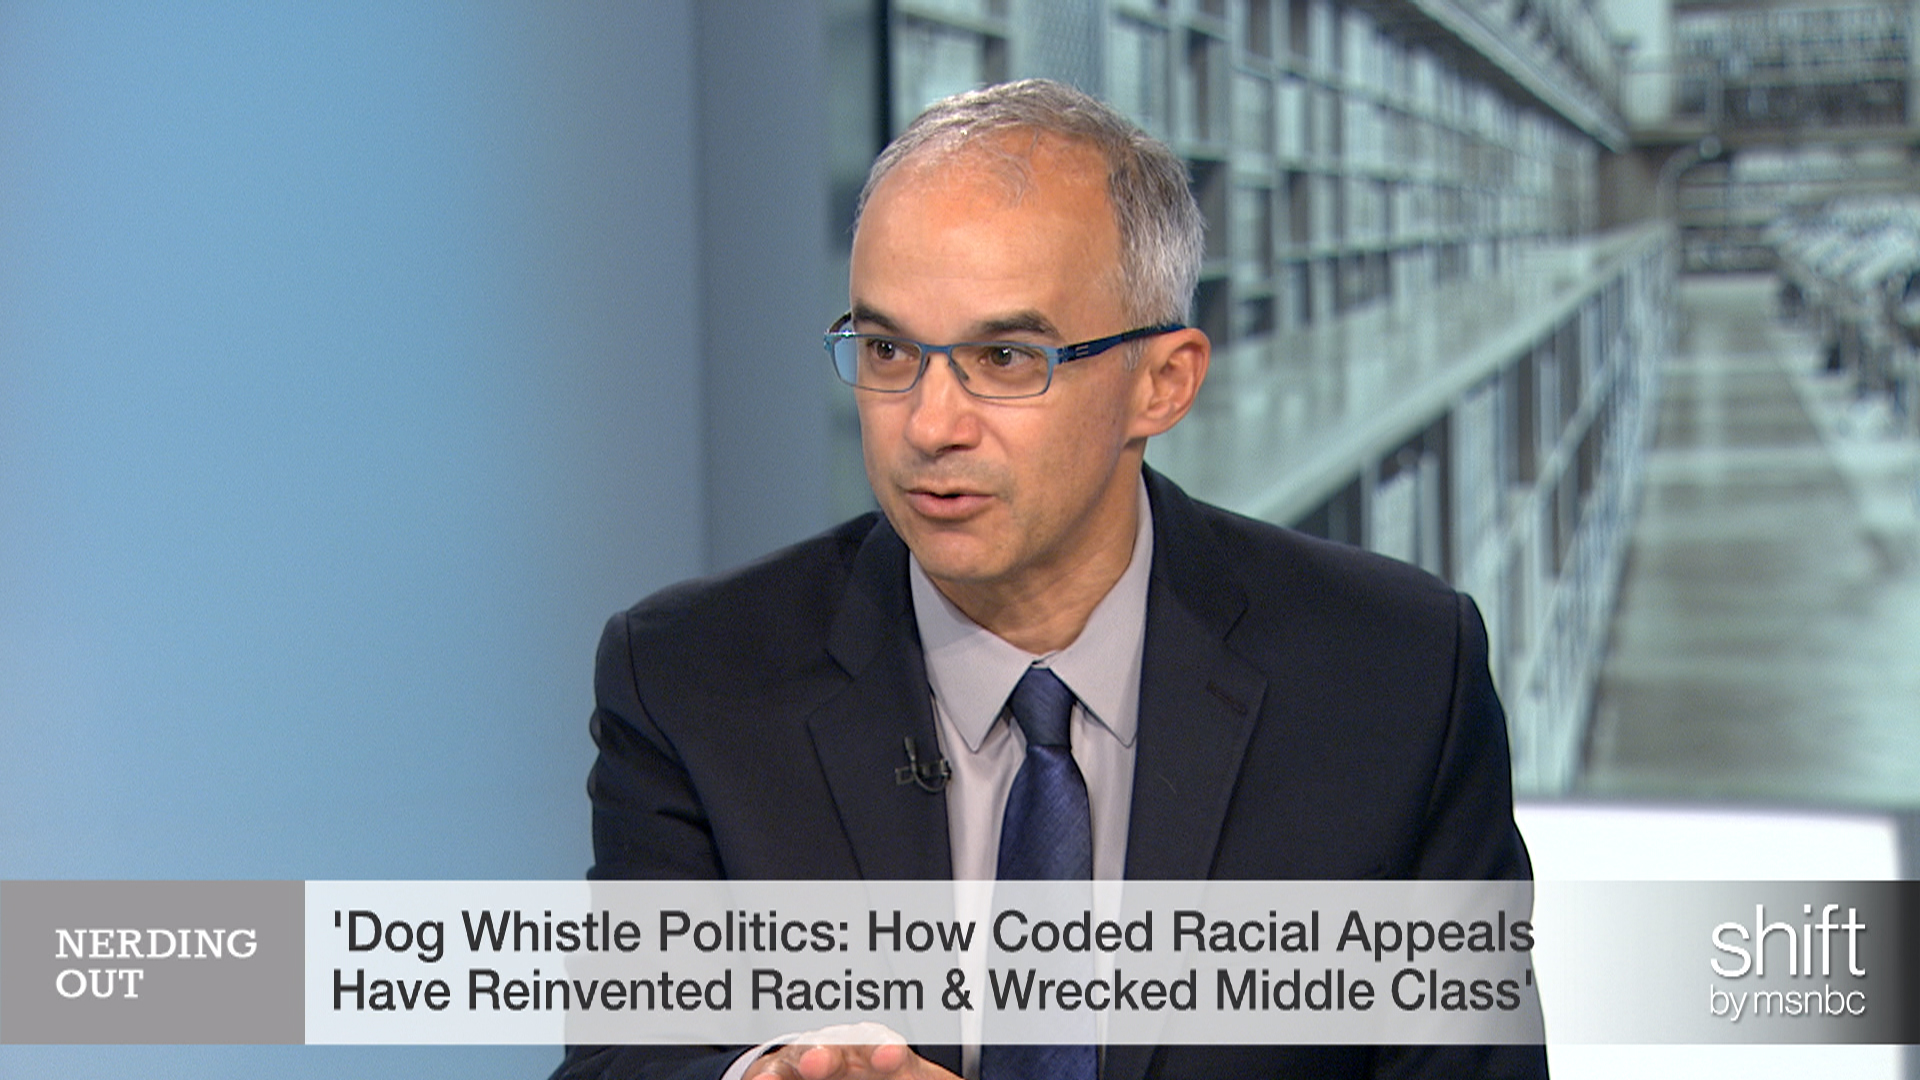 Dog Whistle Politics are reinventing racism